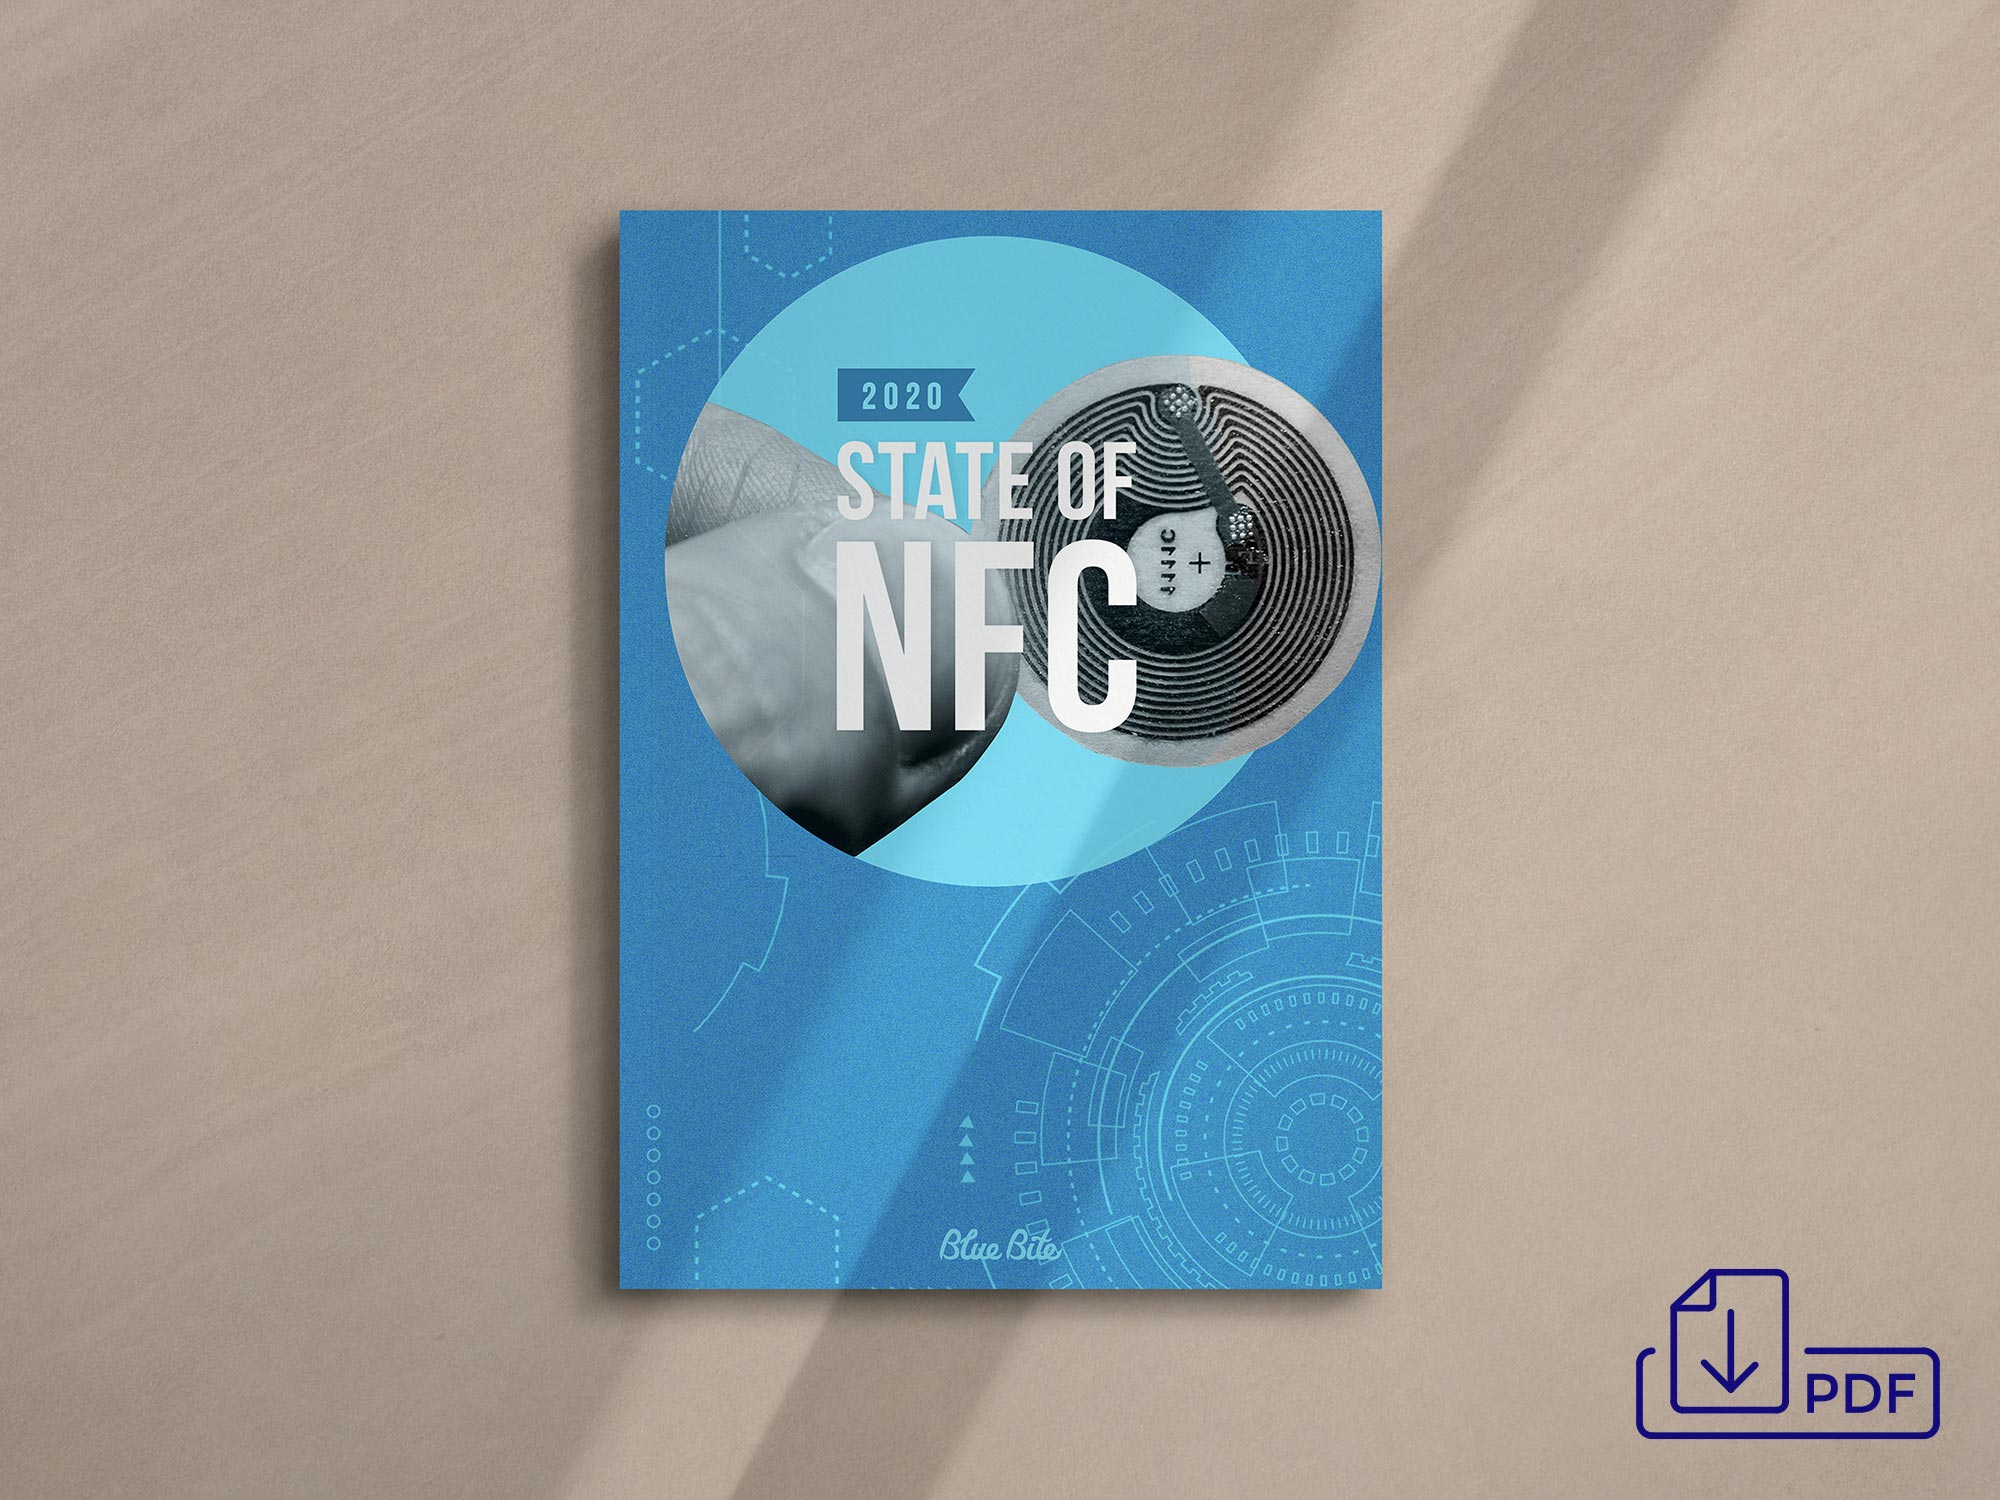 Get the State of NFC PDF